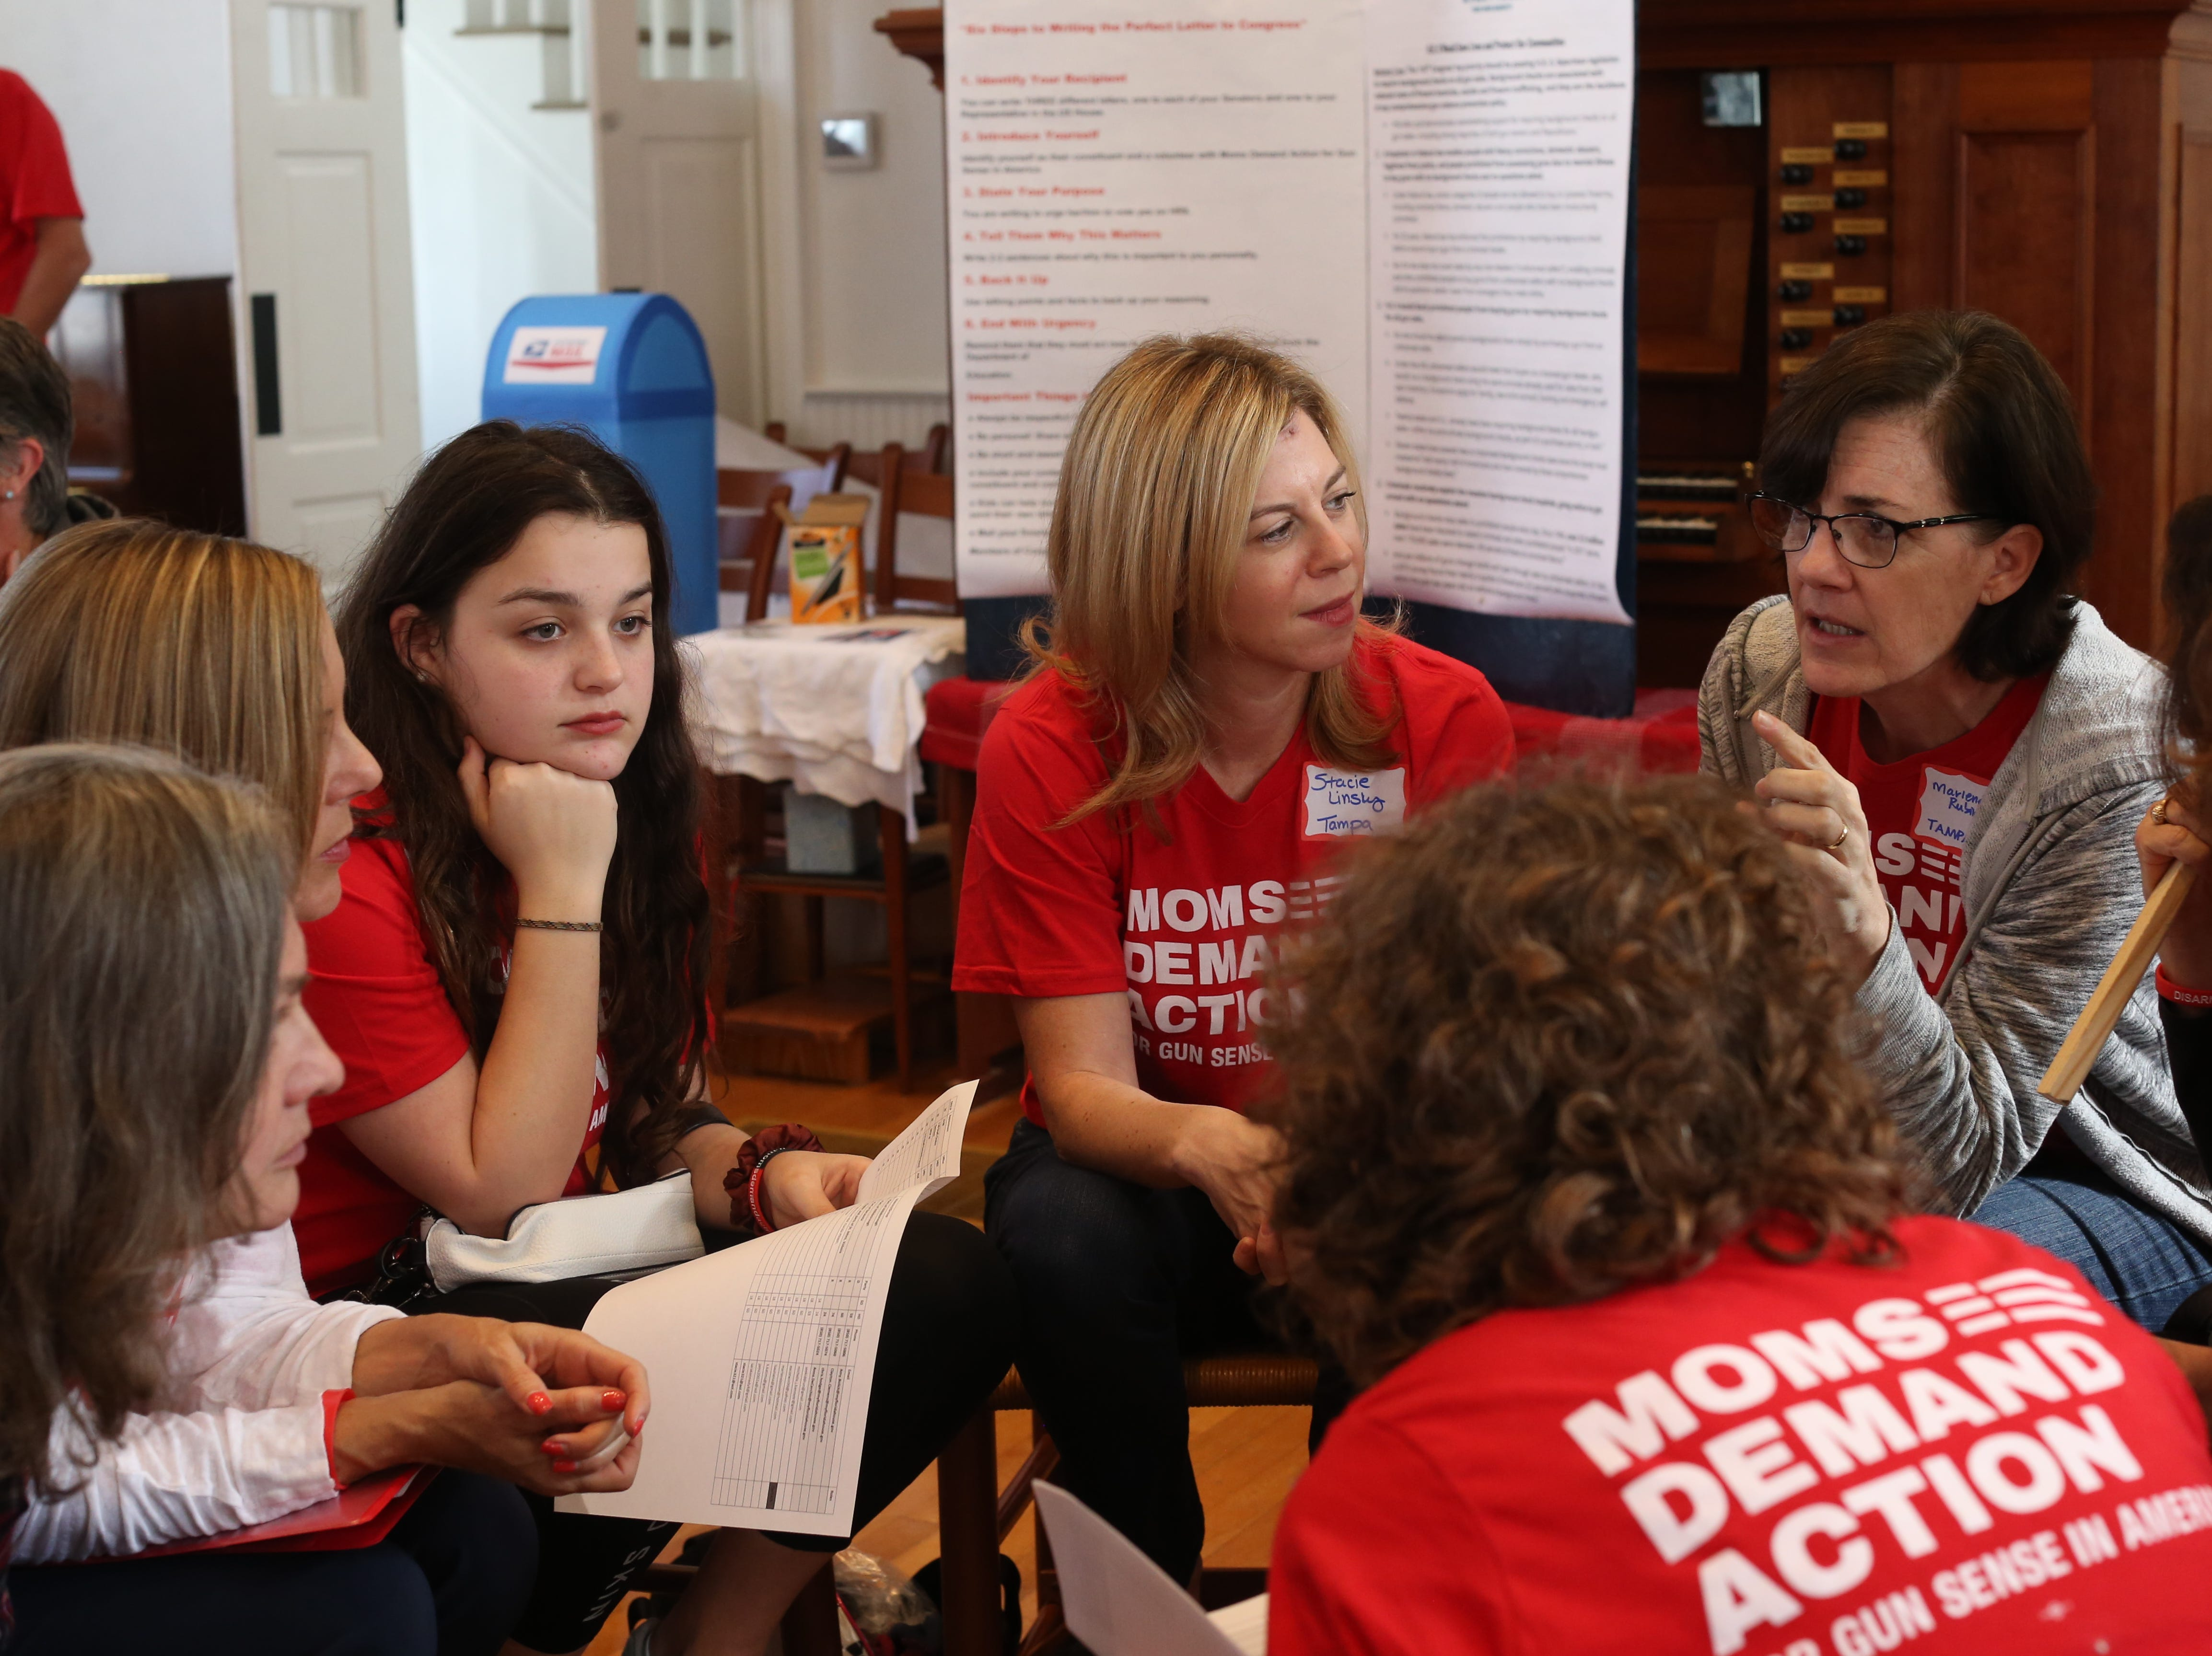 Tampa members of Moms Demand Action huddle up before departing for the Capitol where they would meet with lawmakers to lobby for stricter gun laws in Florida Wednesday, Feb. 6, 2019.